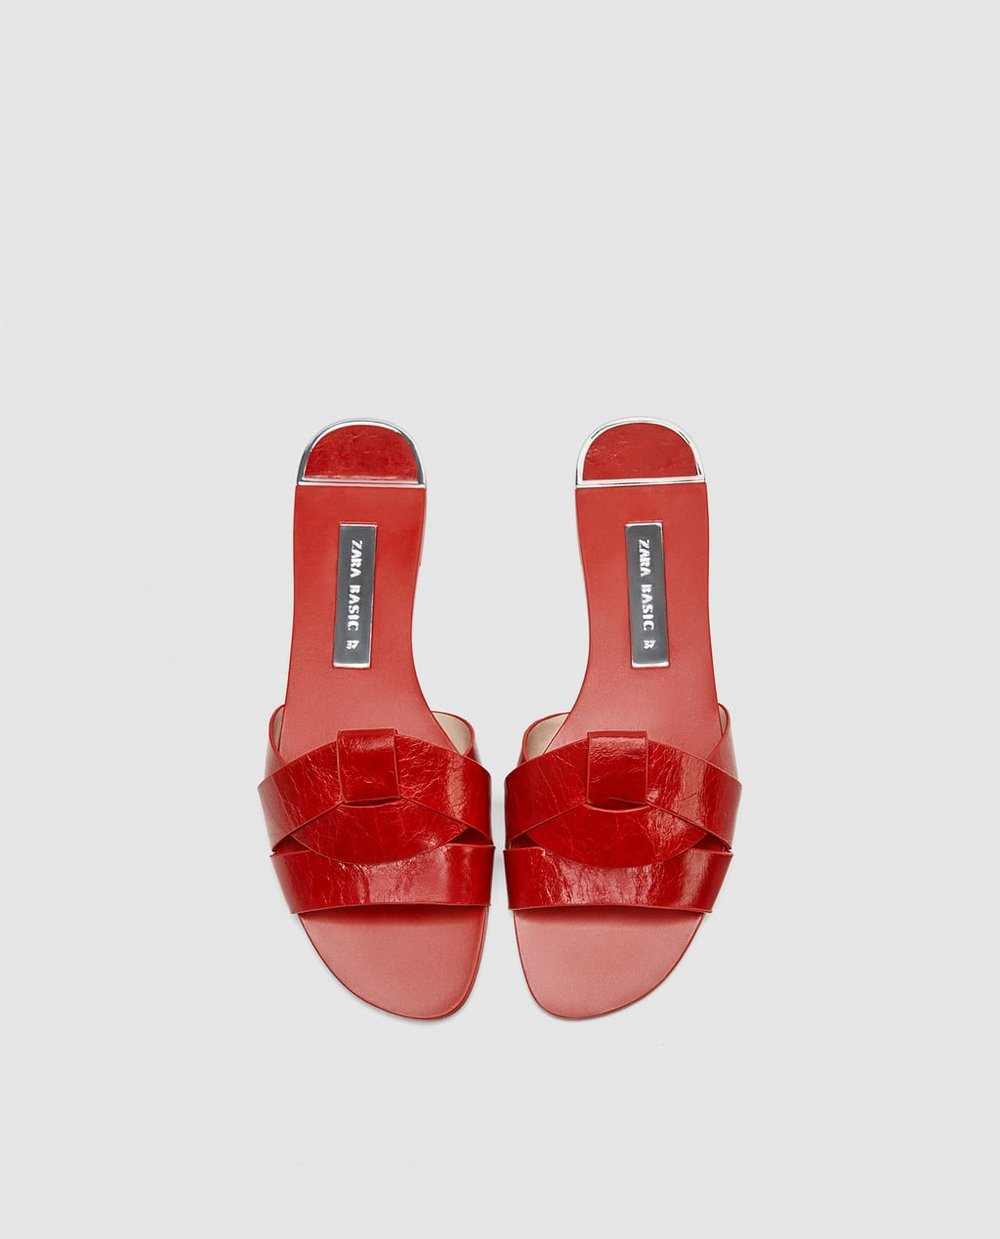 Zara-leather-crossover-sandals.jpg